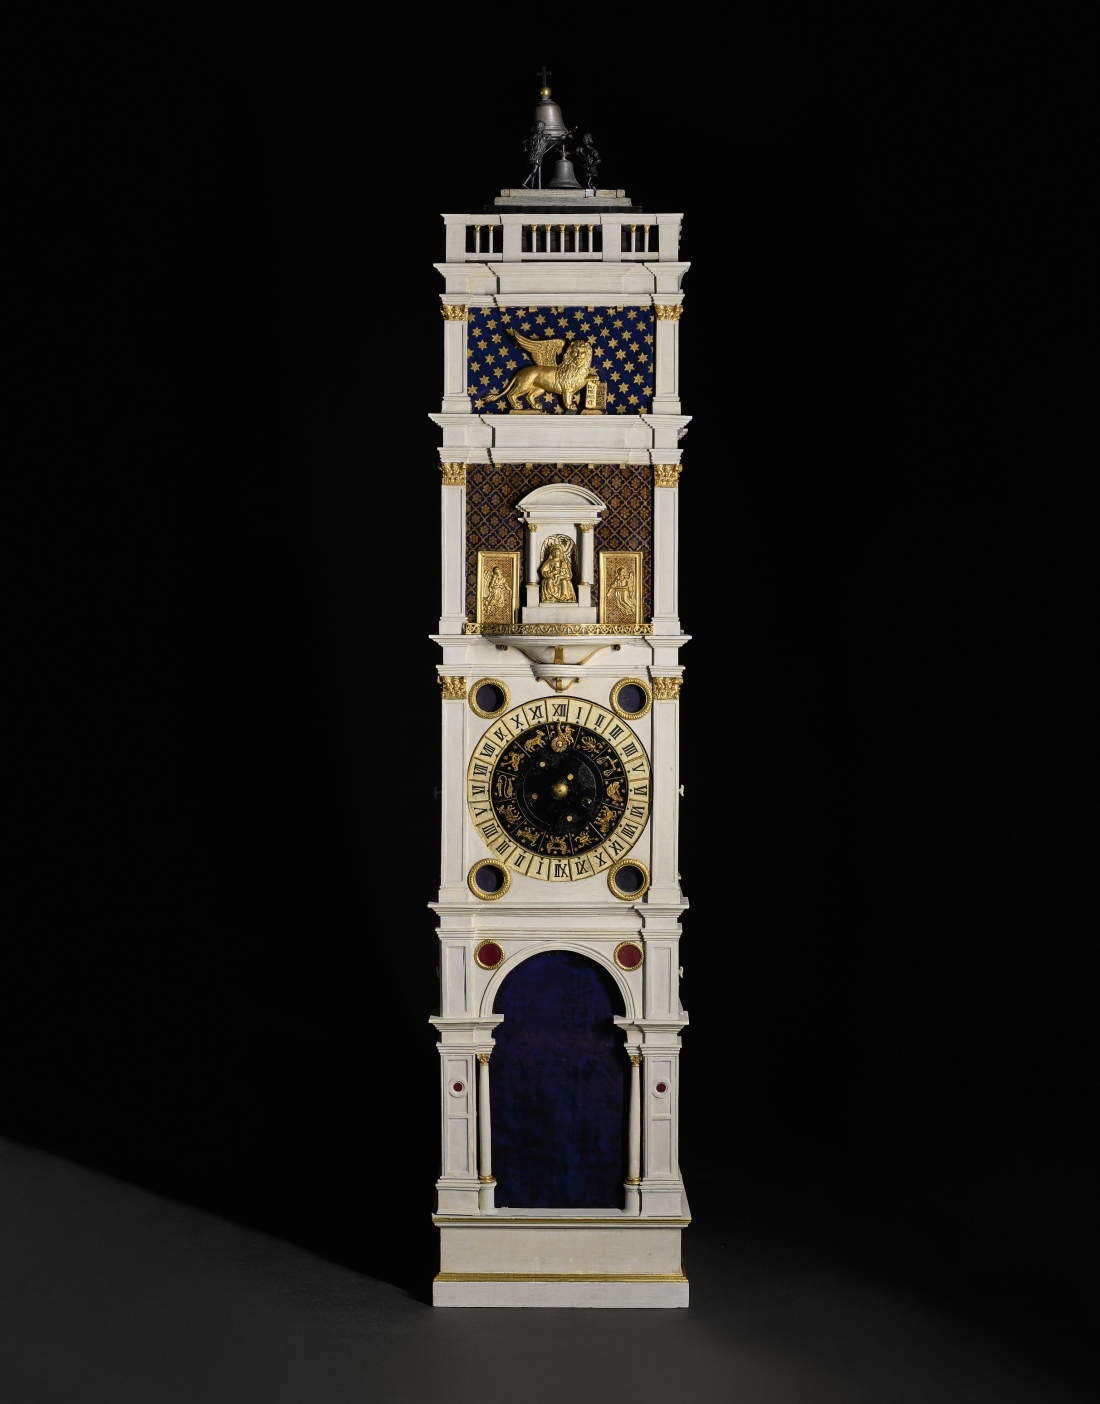 Lot 26 torre Dell'Orologio_£600,000 - 800,000 (low)